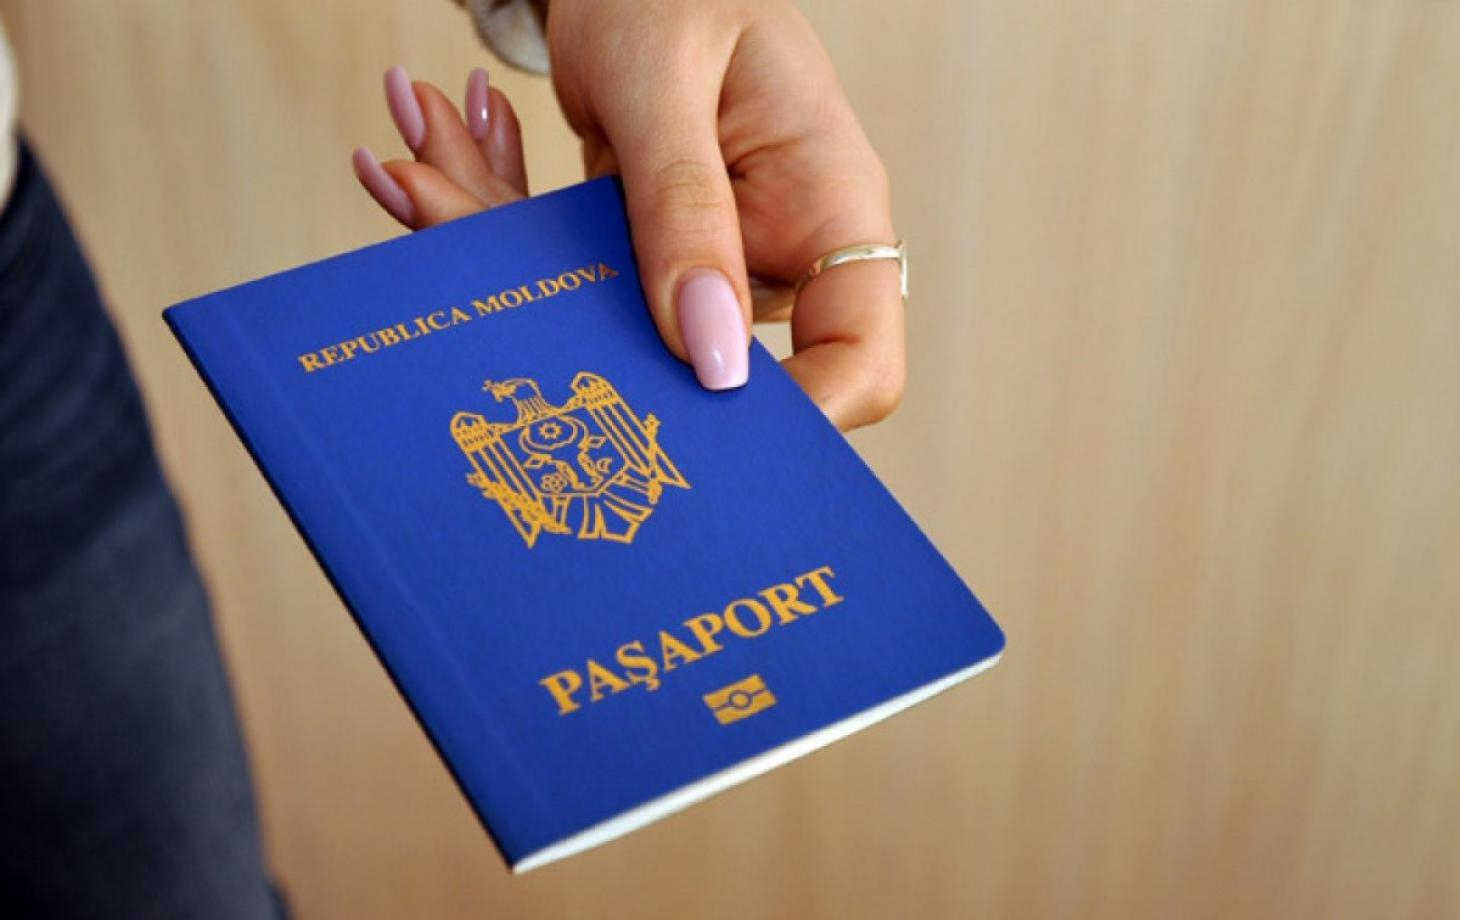 Moldova Citizen having the passport